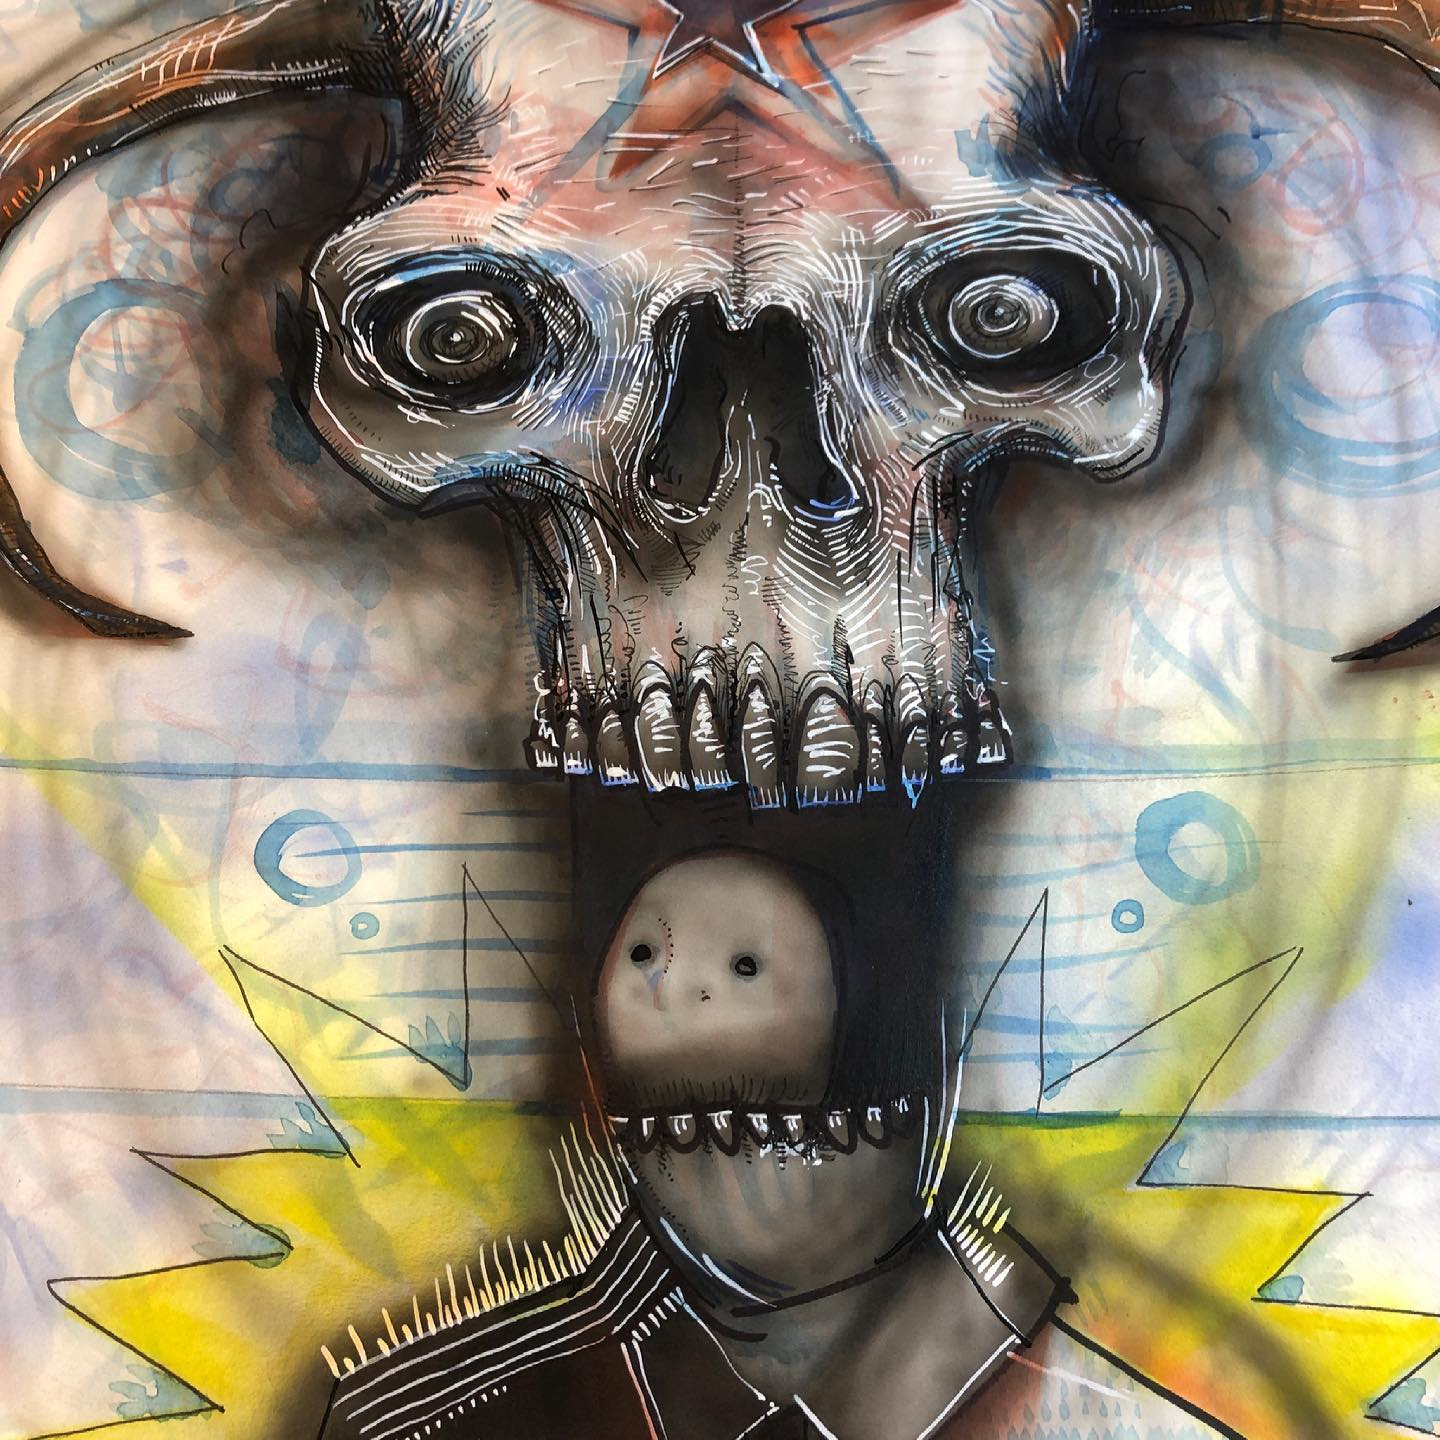 General Dental part two - airbrush, ink, watercolor drawing of a head surrounded by the teeth of a large skull character